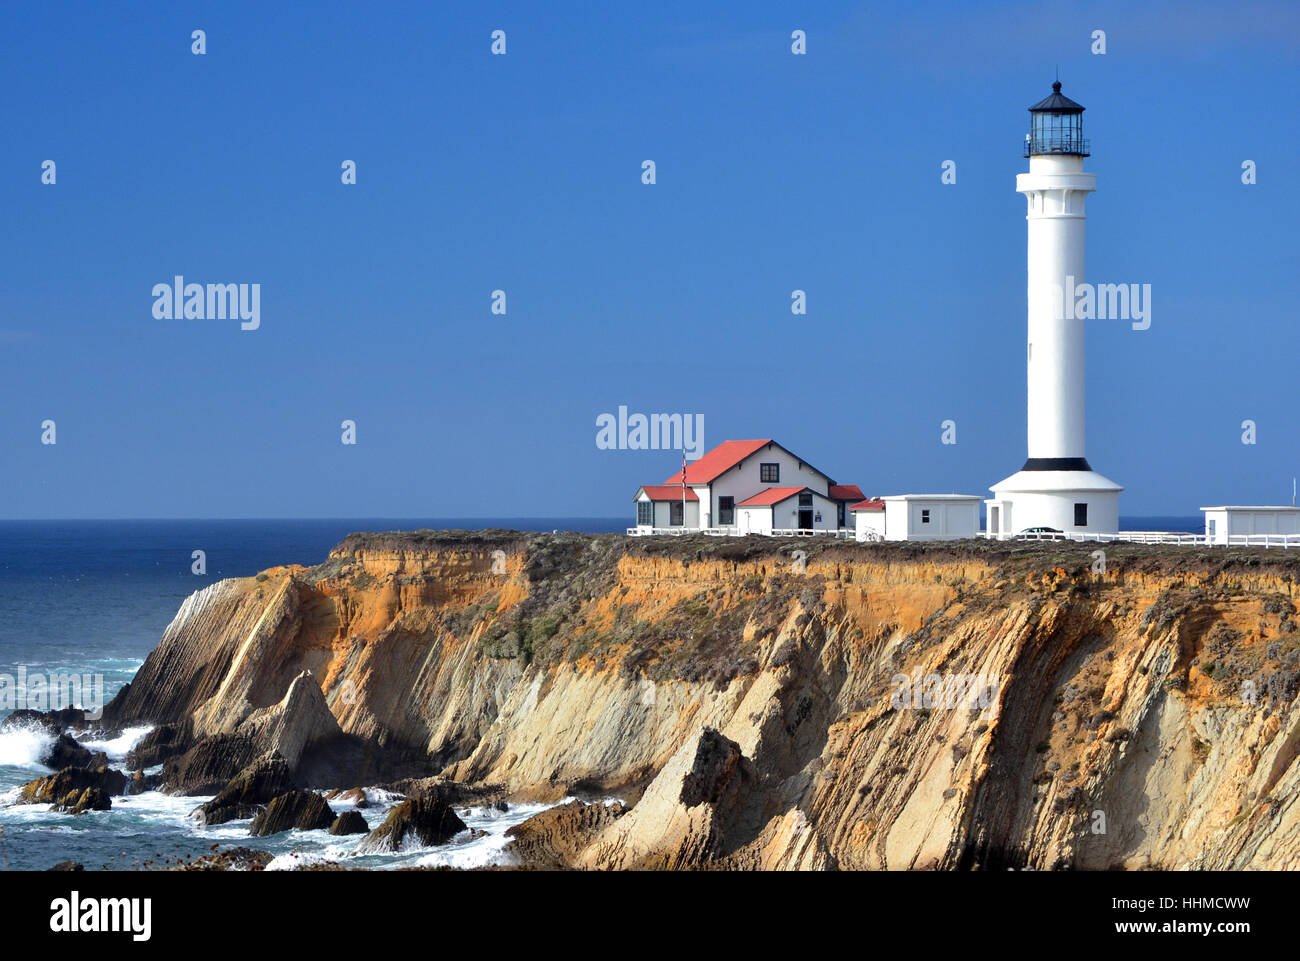 Point Arena Lighthouse - Stock Image